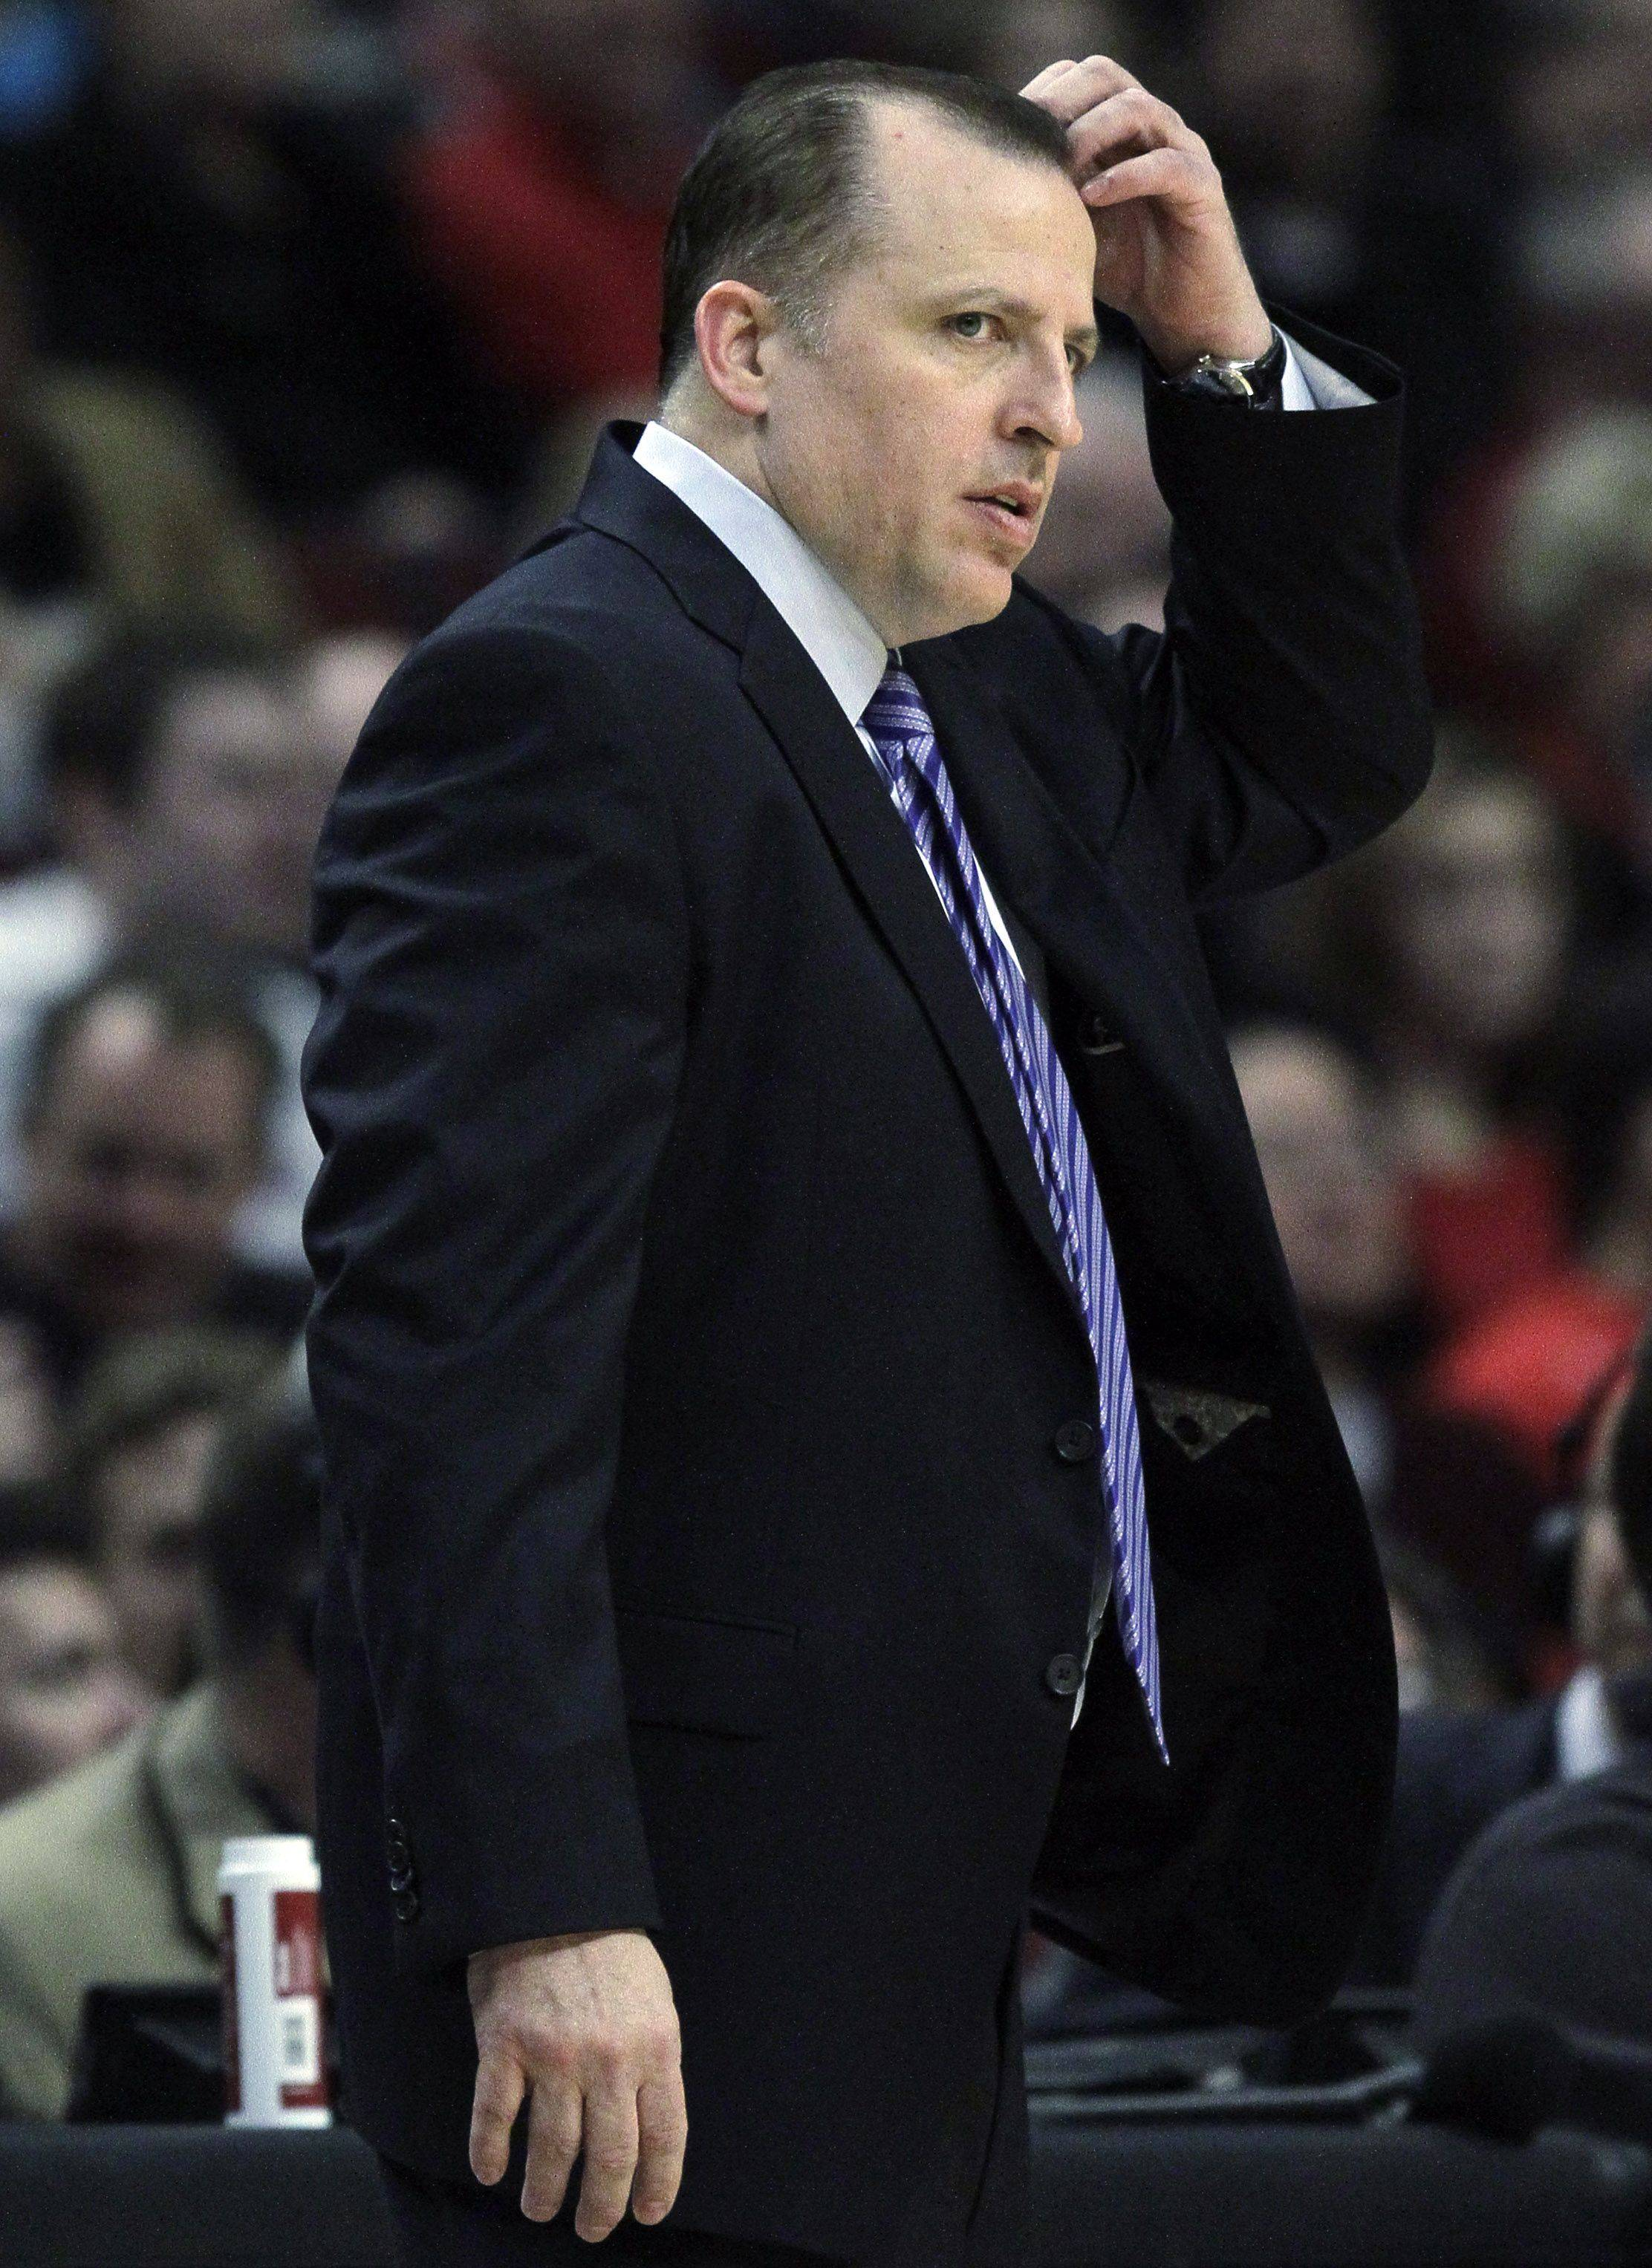 Chicago Bulls head coach Tom Thibodeau reacts as he watches his team play against the Houston Rockets.